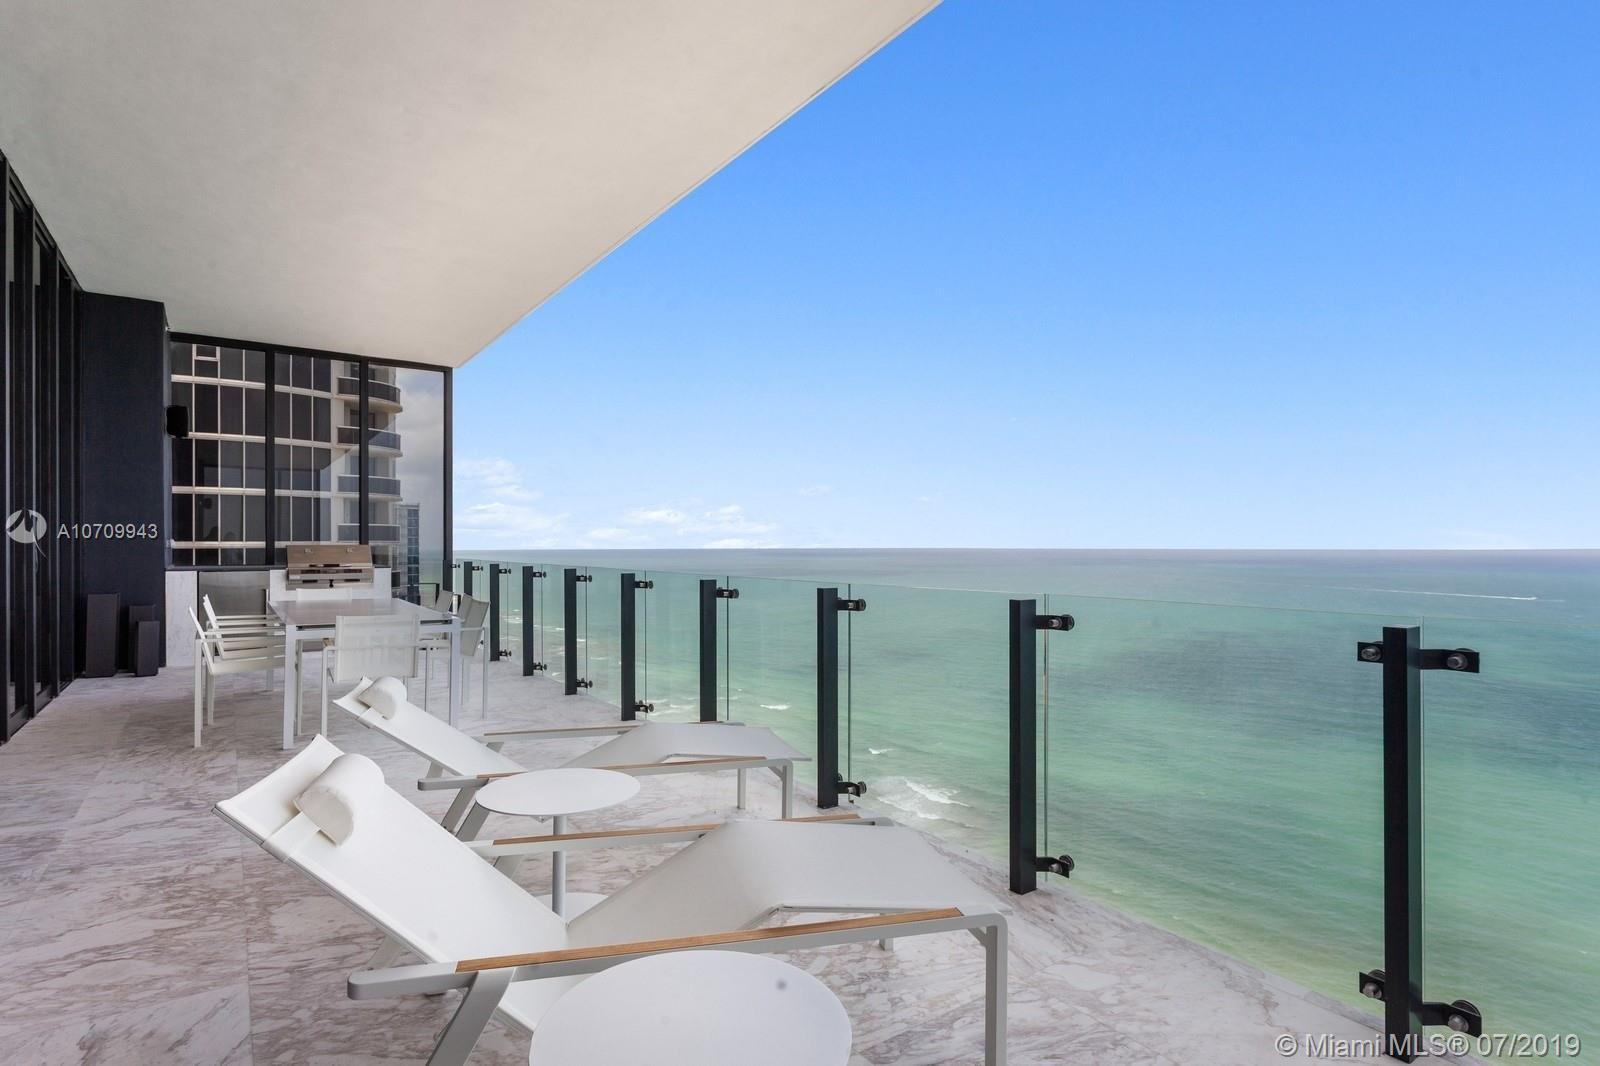 17141 Collins Ave 2801, Sunny Isles Beach, FL 33160